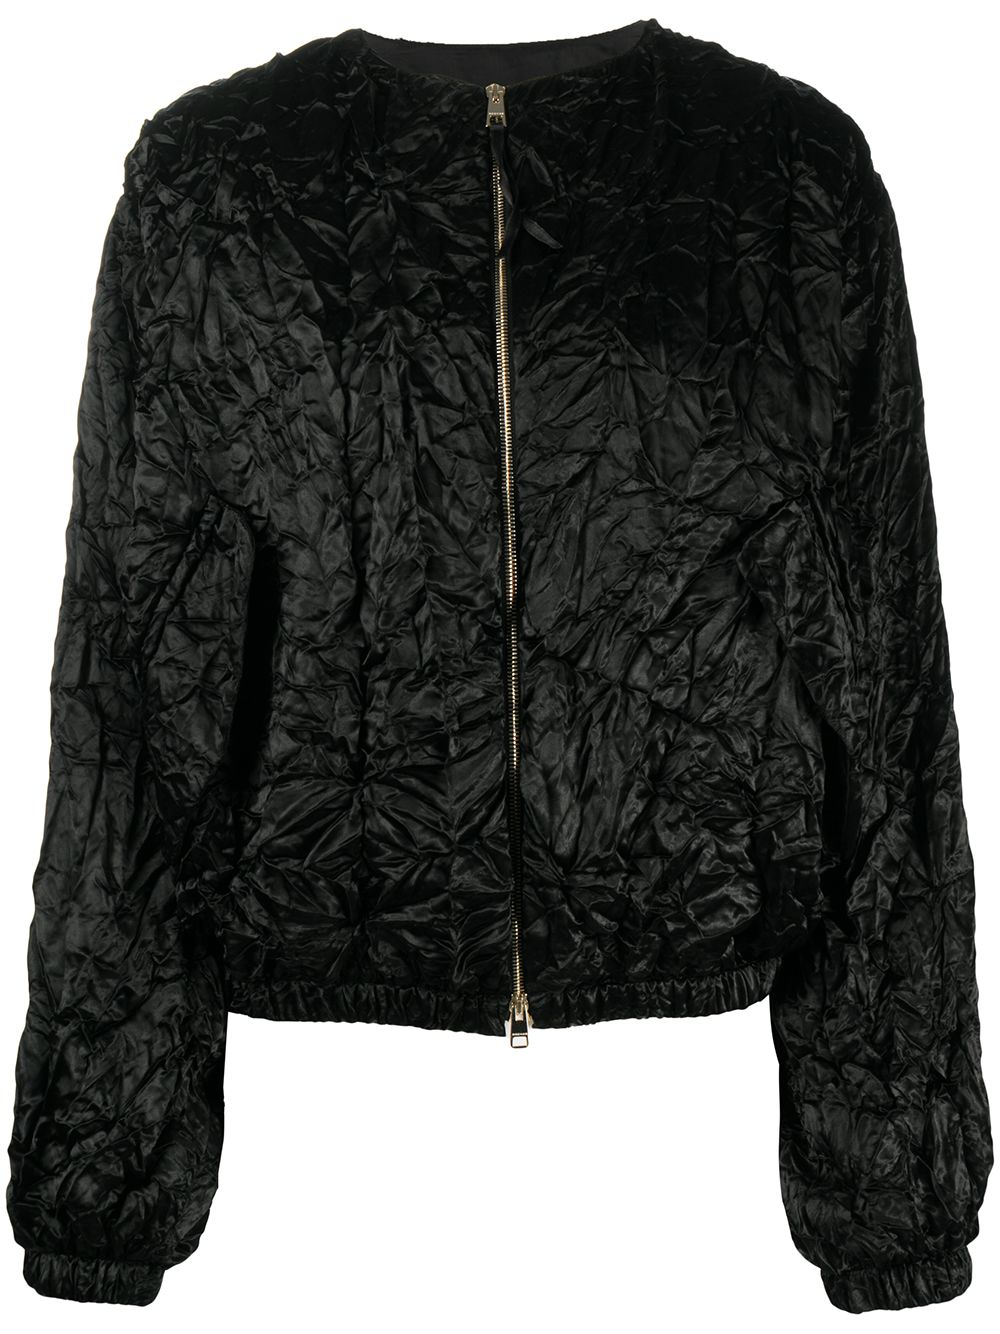 Black silk and wool crumpled-effect bomber jacket  Rochas |  | ROPQ420266-RQ290200001